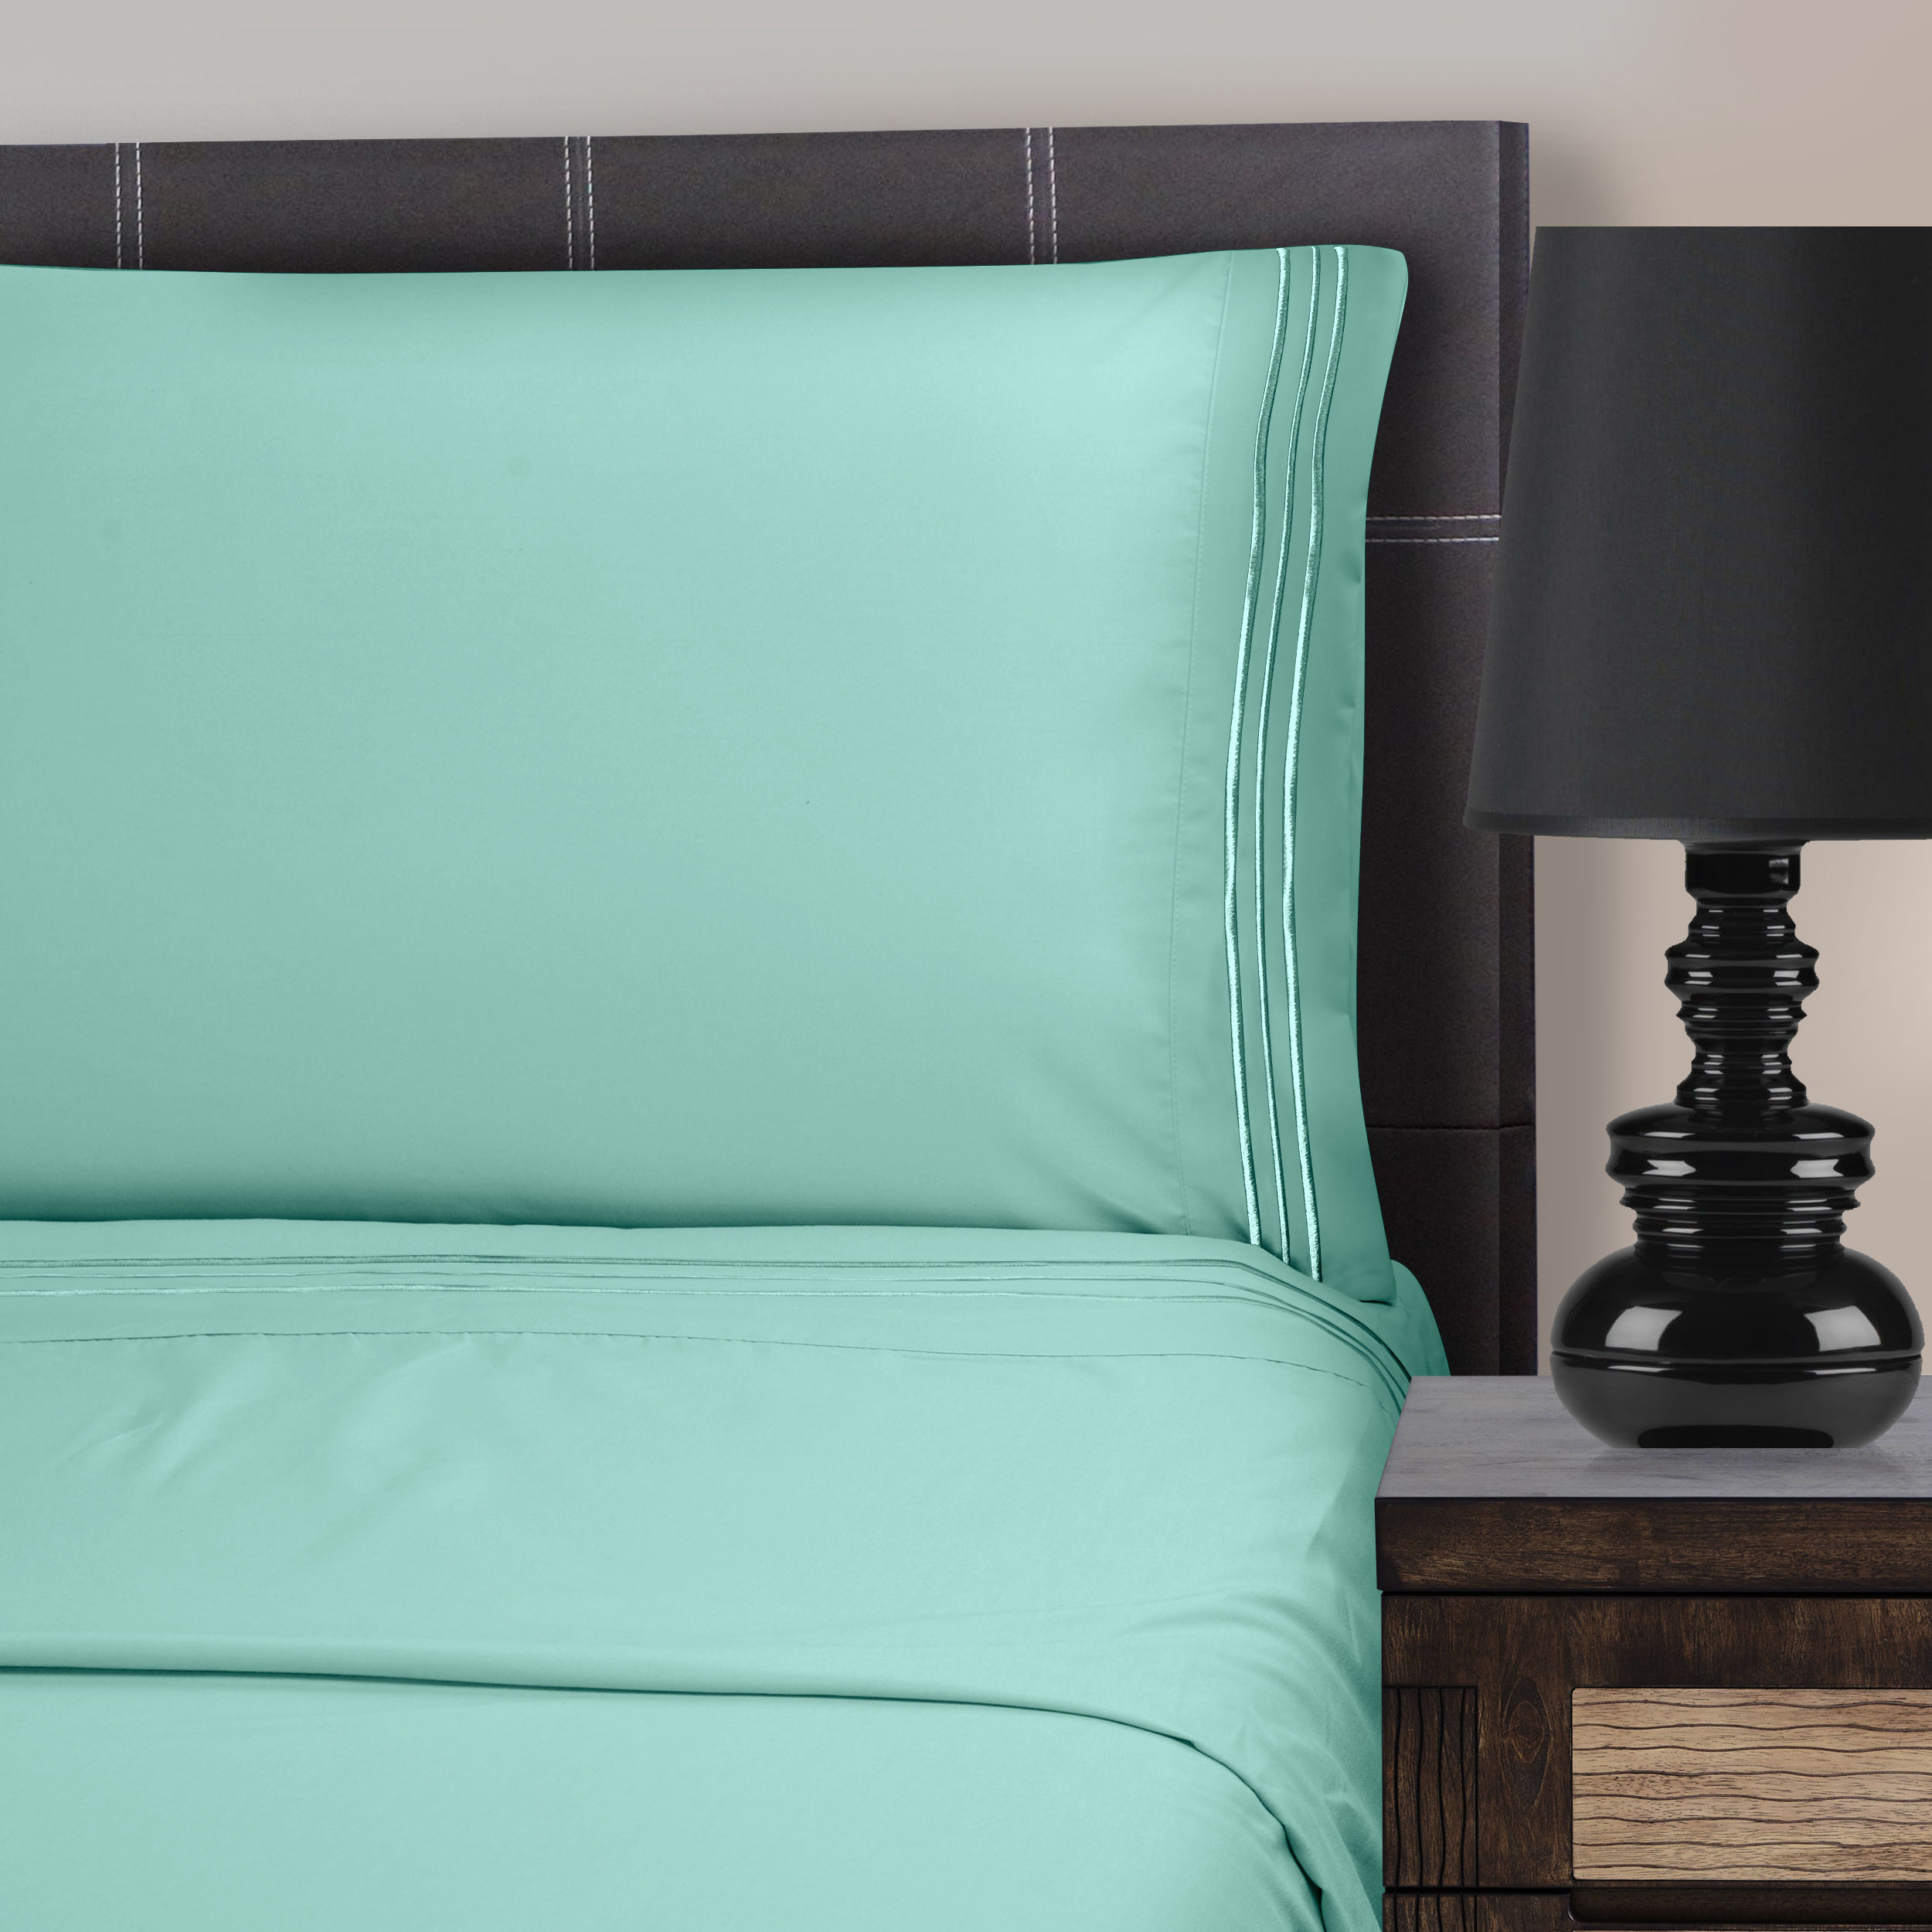 Superior Light Weight and Super Soft Brushed Microfiber, Wrinkle Resistant Sheet Set with 3-Line Embroidery